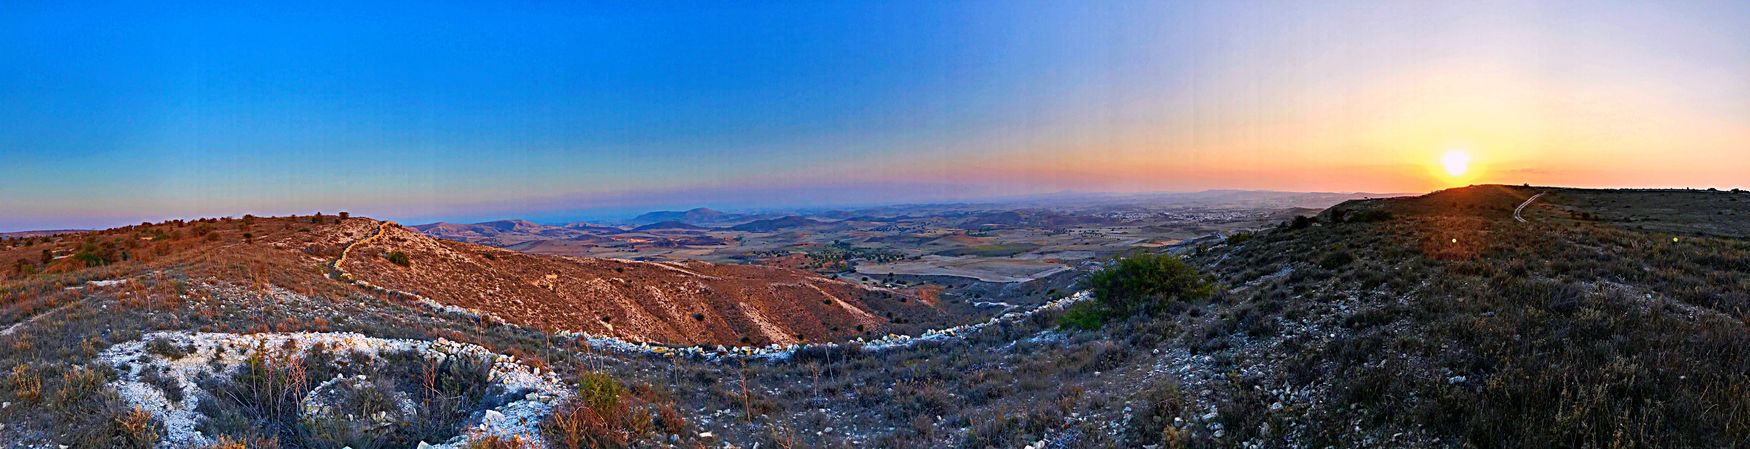 Mobile Photography IPhoneography Mobilephotography Sunset Scenics Nature Beauty In Nature Mountain Tranquility Tranquil Scene Sky No People Mountain Range Landscape Outdoors Day Shot On IPhone 7 Plus The Week On EyeEm Clear Sky Cyprus Larnaca Larnaca, Cyprus Forbidden Area Smartphonephotography